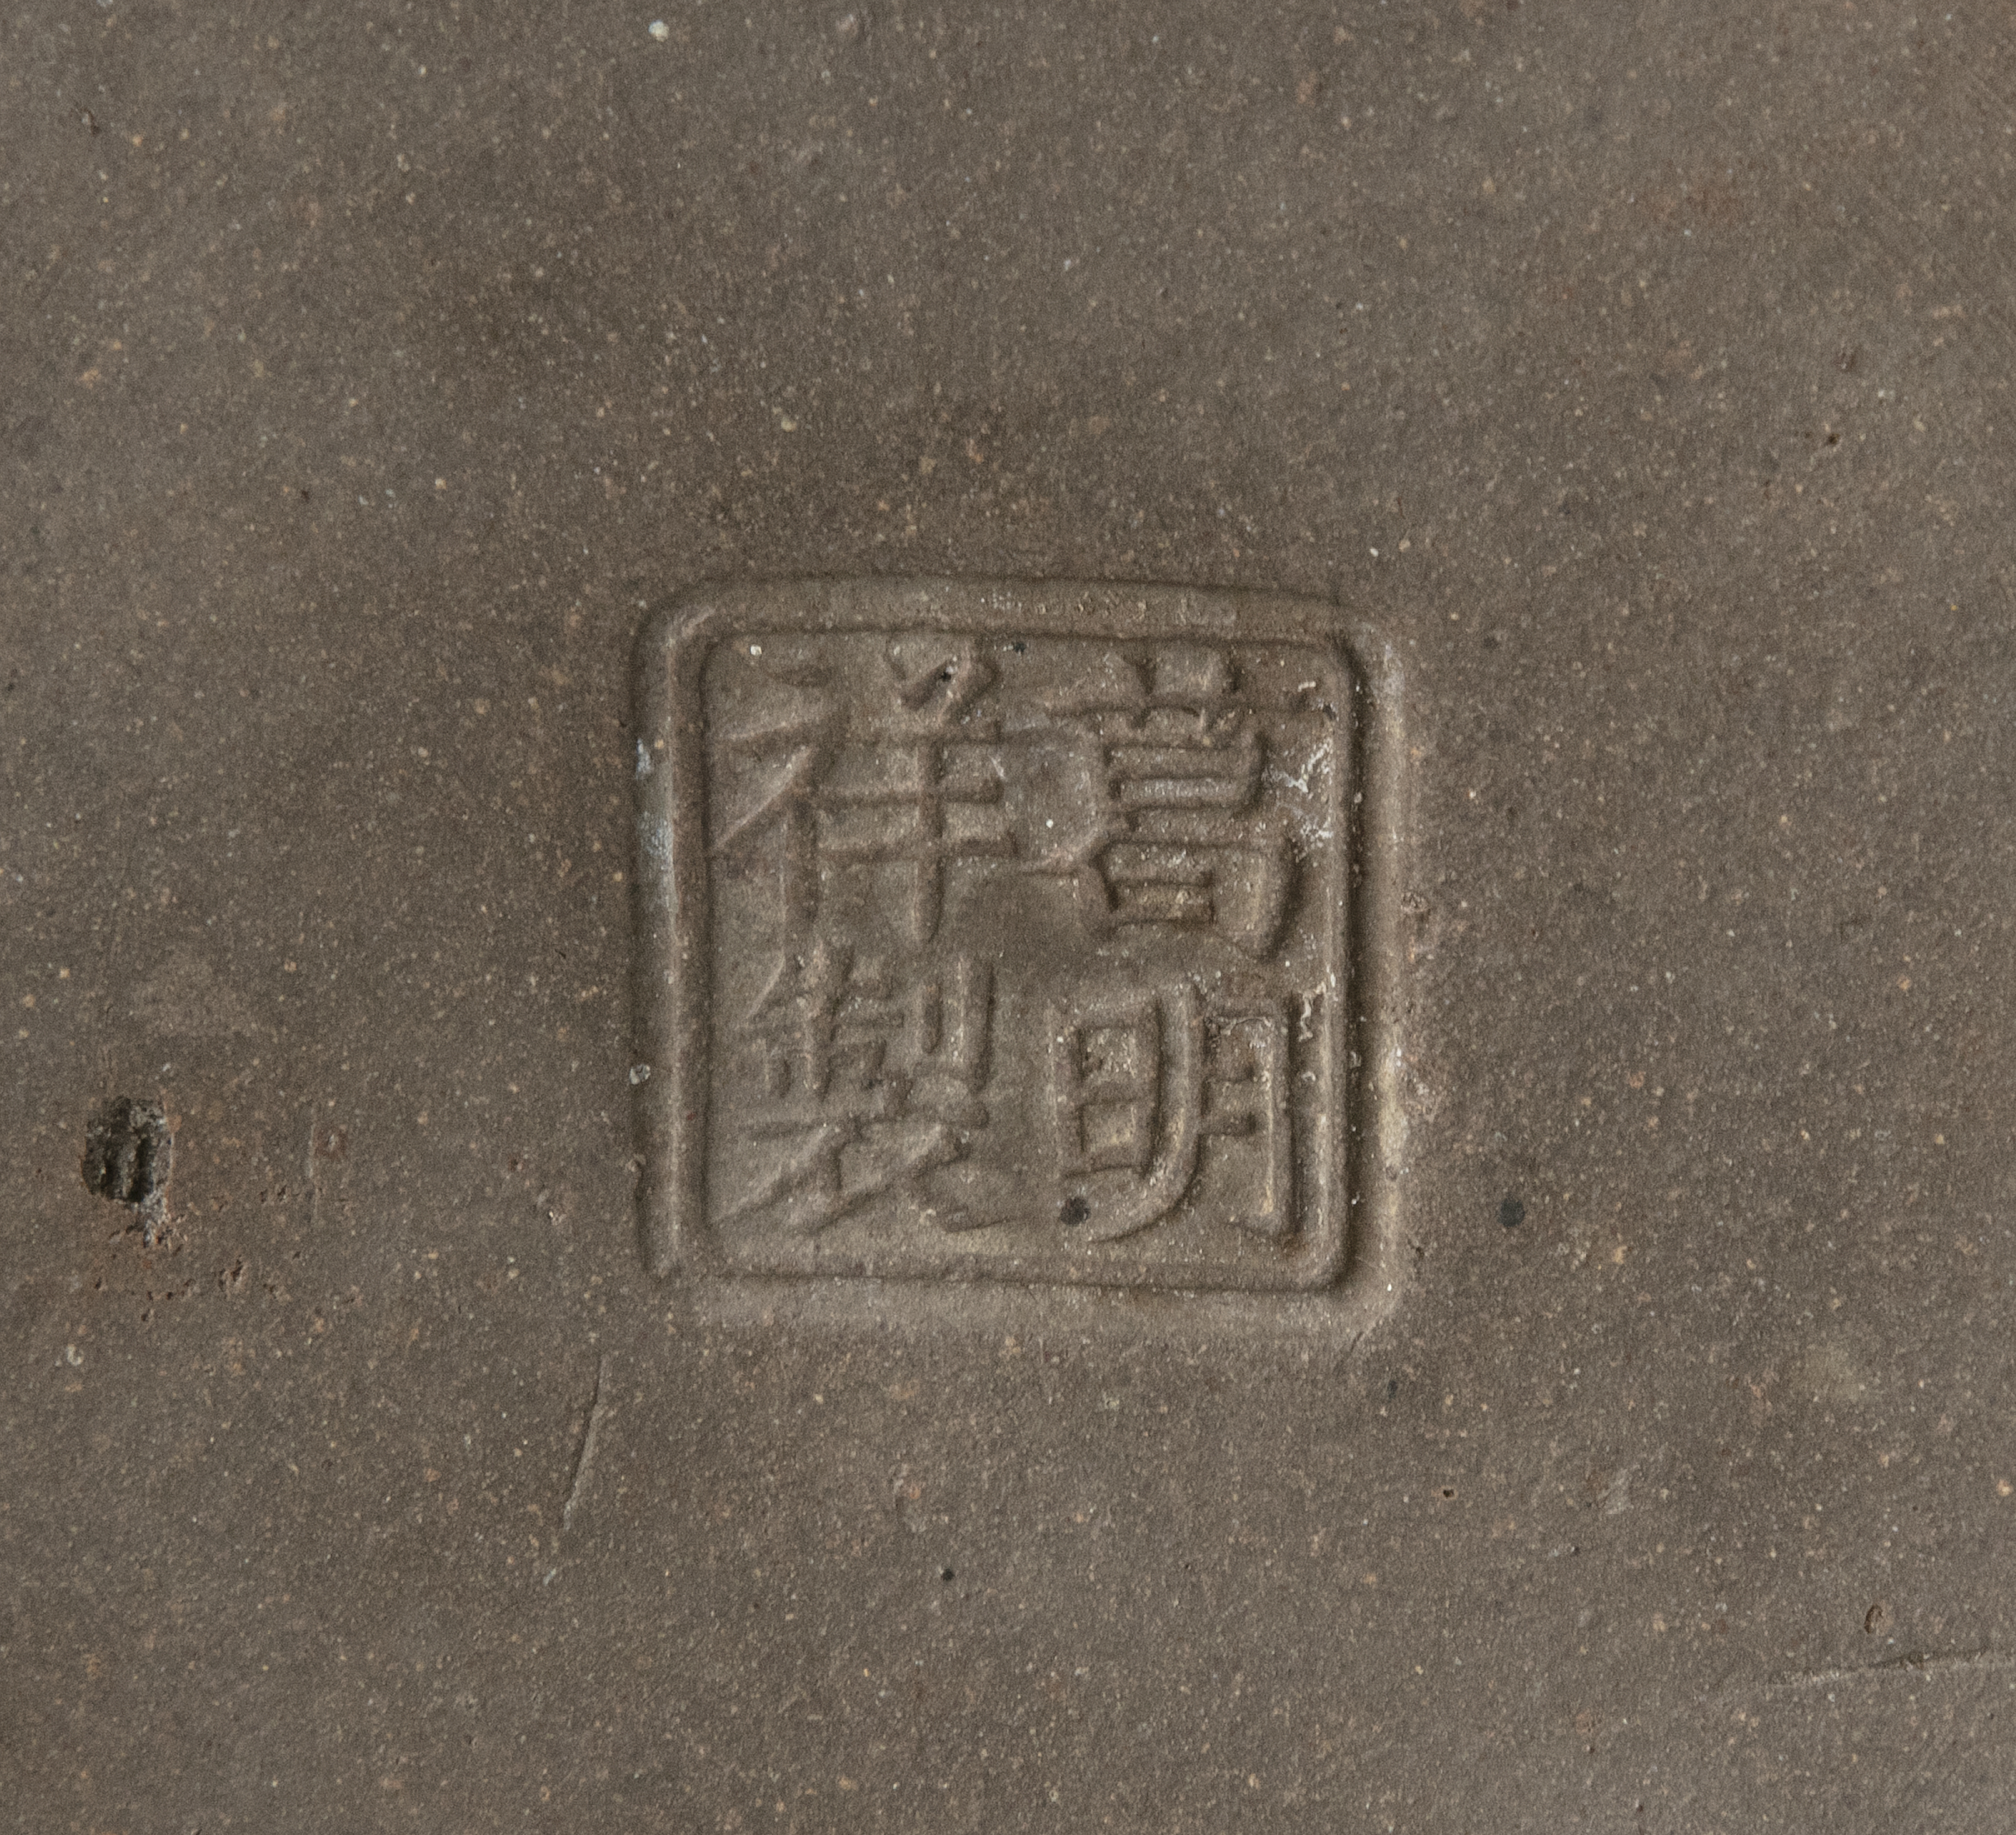 A ROBIN'S EGG GLAZED YIXING VASE BEARING THE SEAL OF GE MINGXIANG 葛明祥 China, 18th century or later - Image 12 of 15